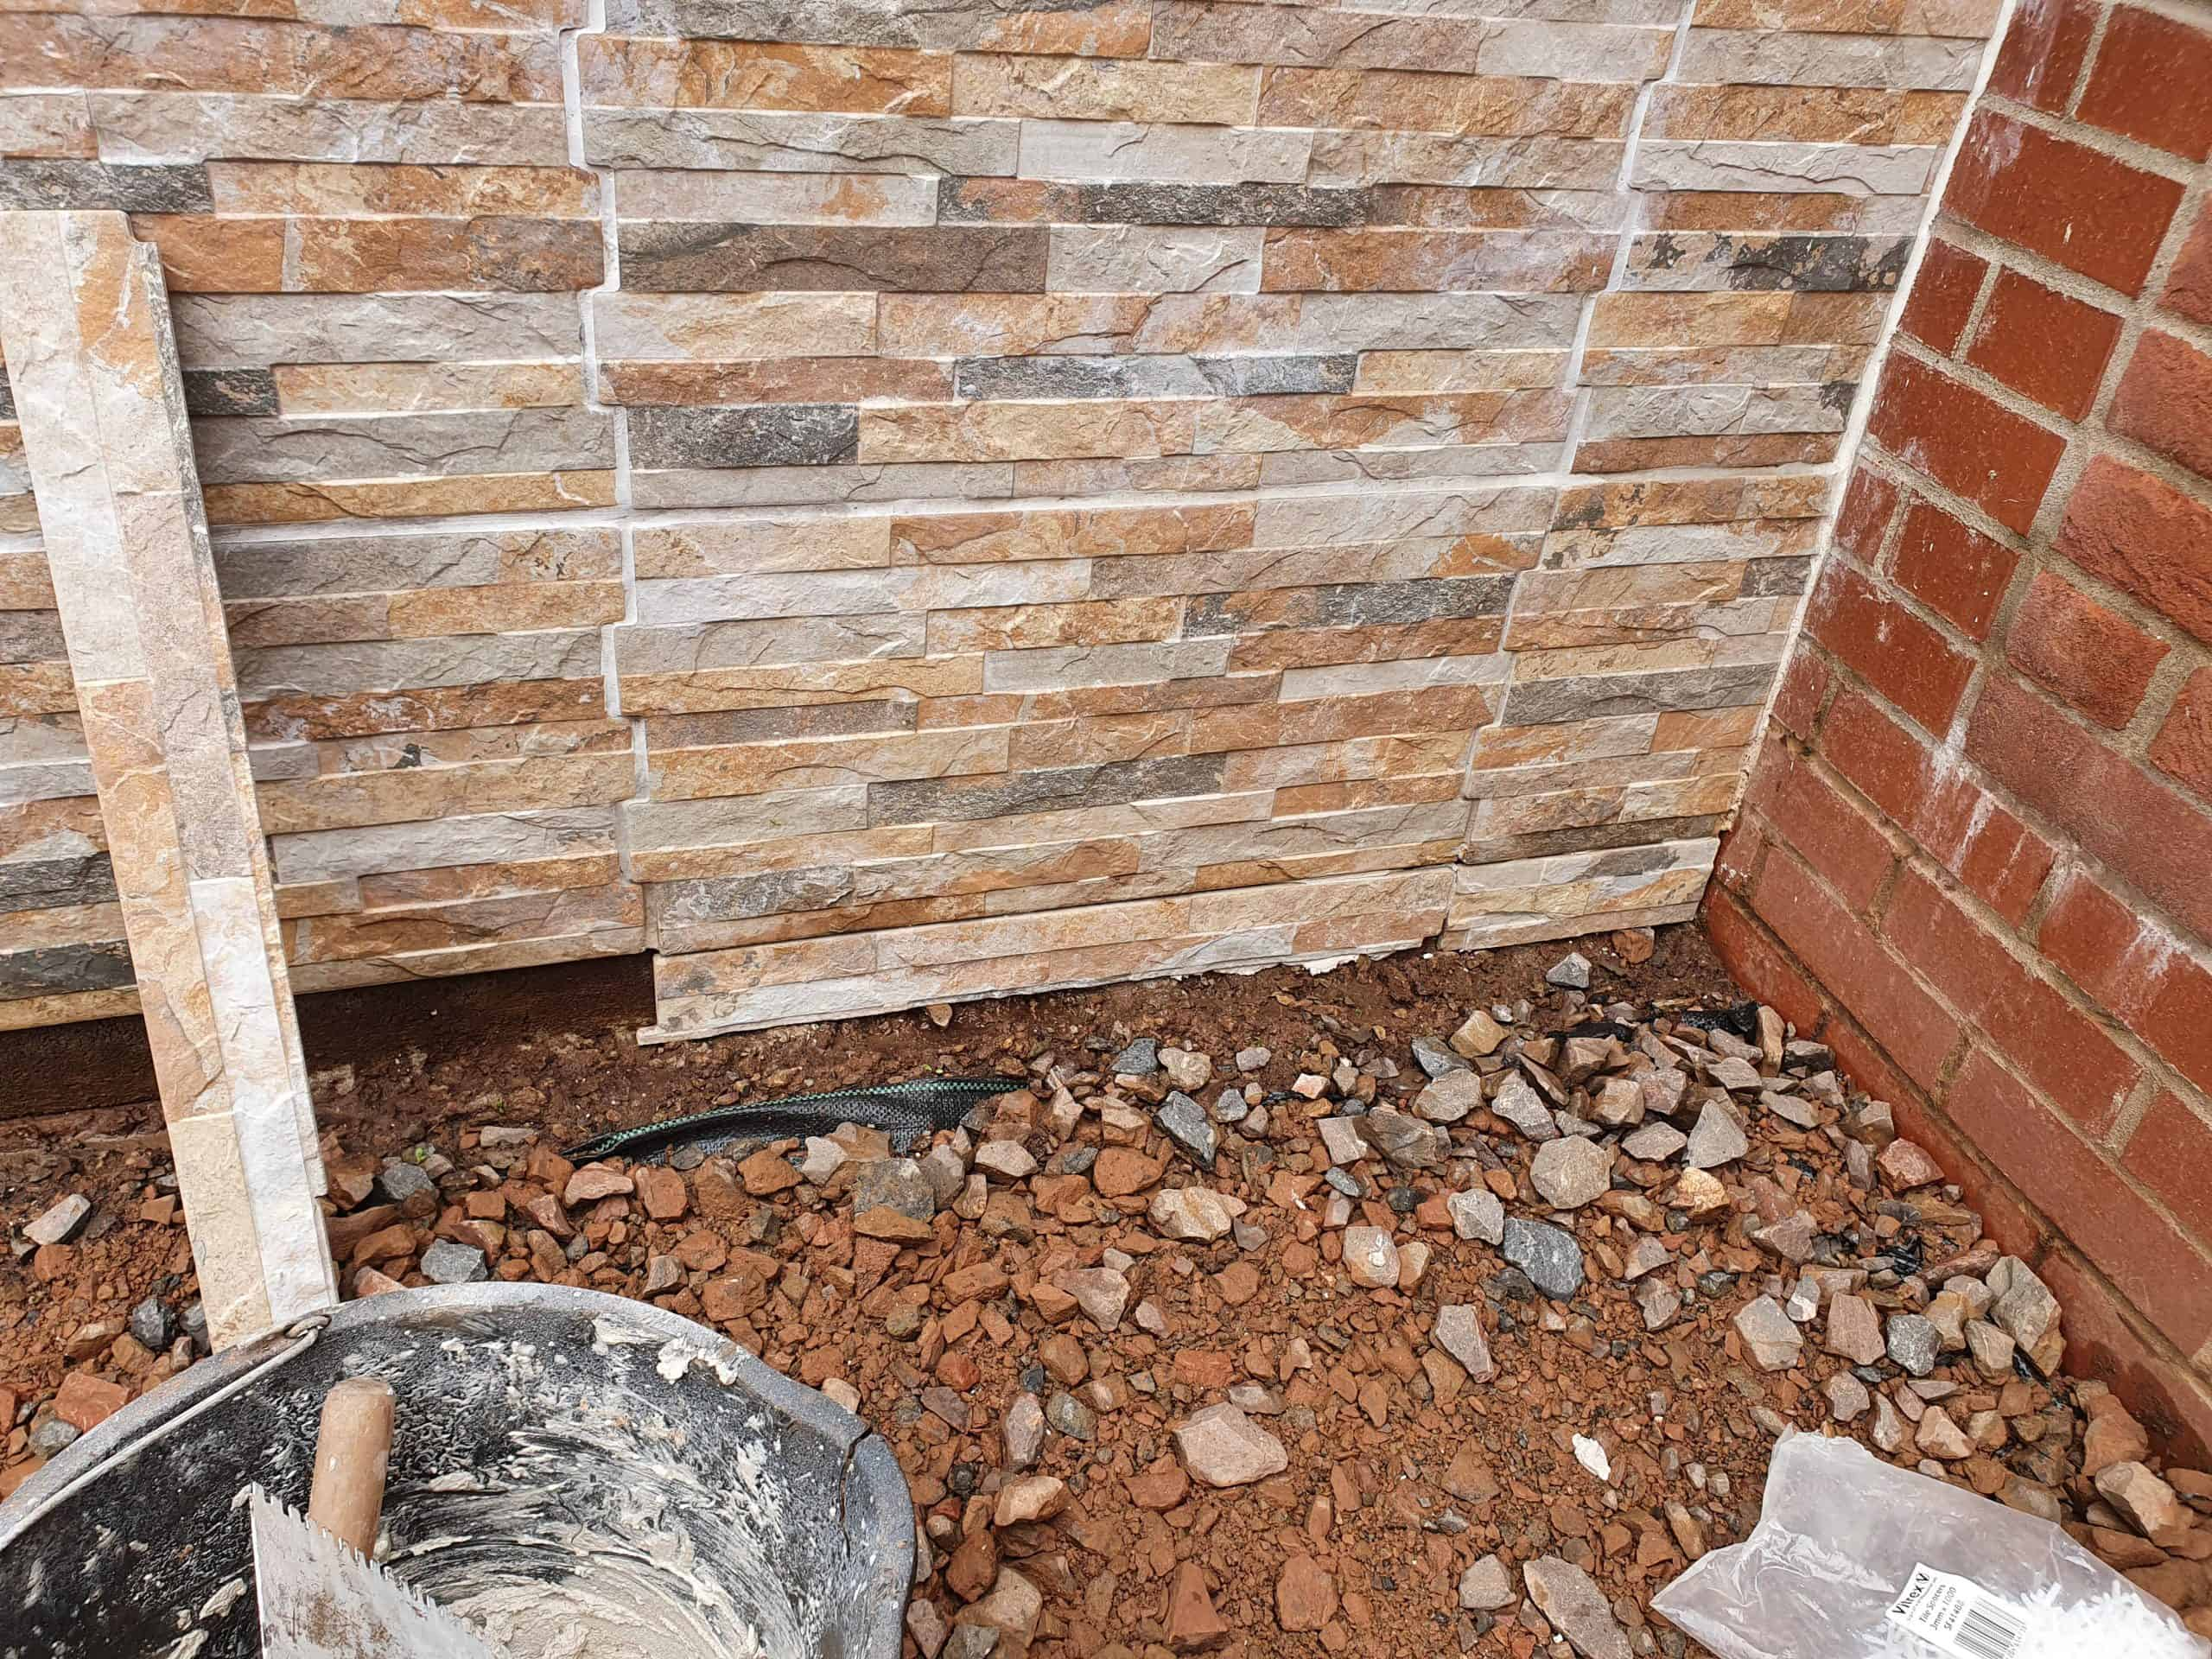 An outdoor tiling project with porcelain tiles and grout